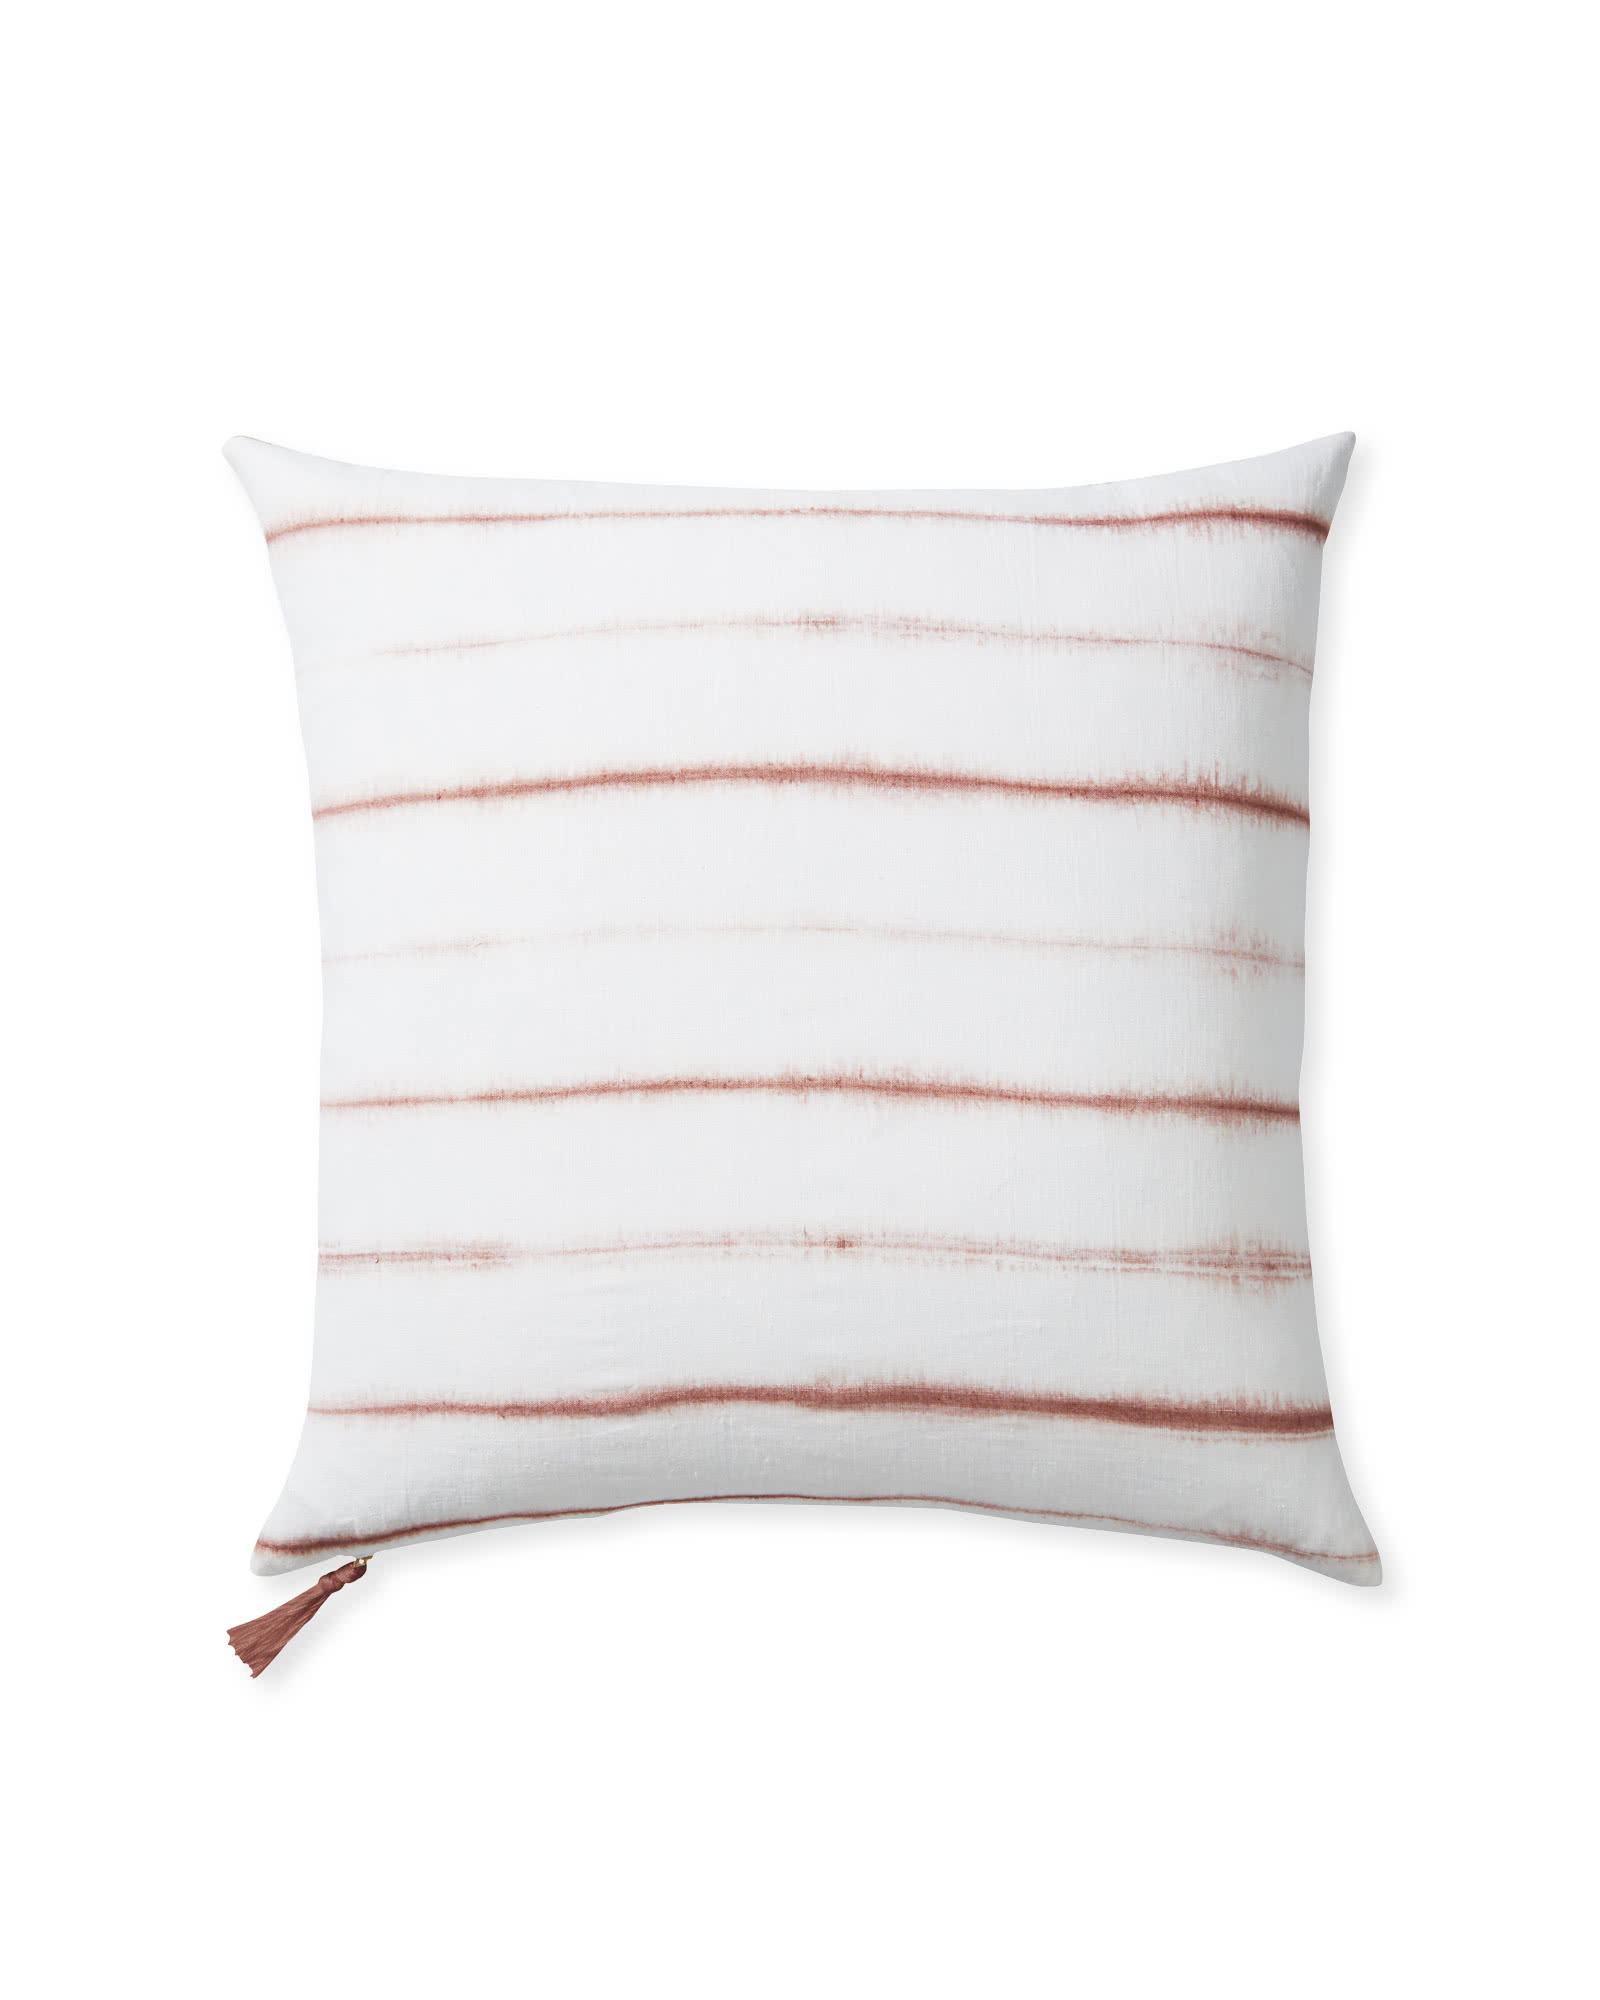 Capitola Stripe Pillow Cover,